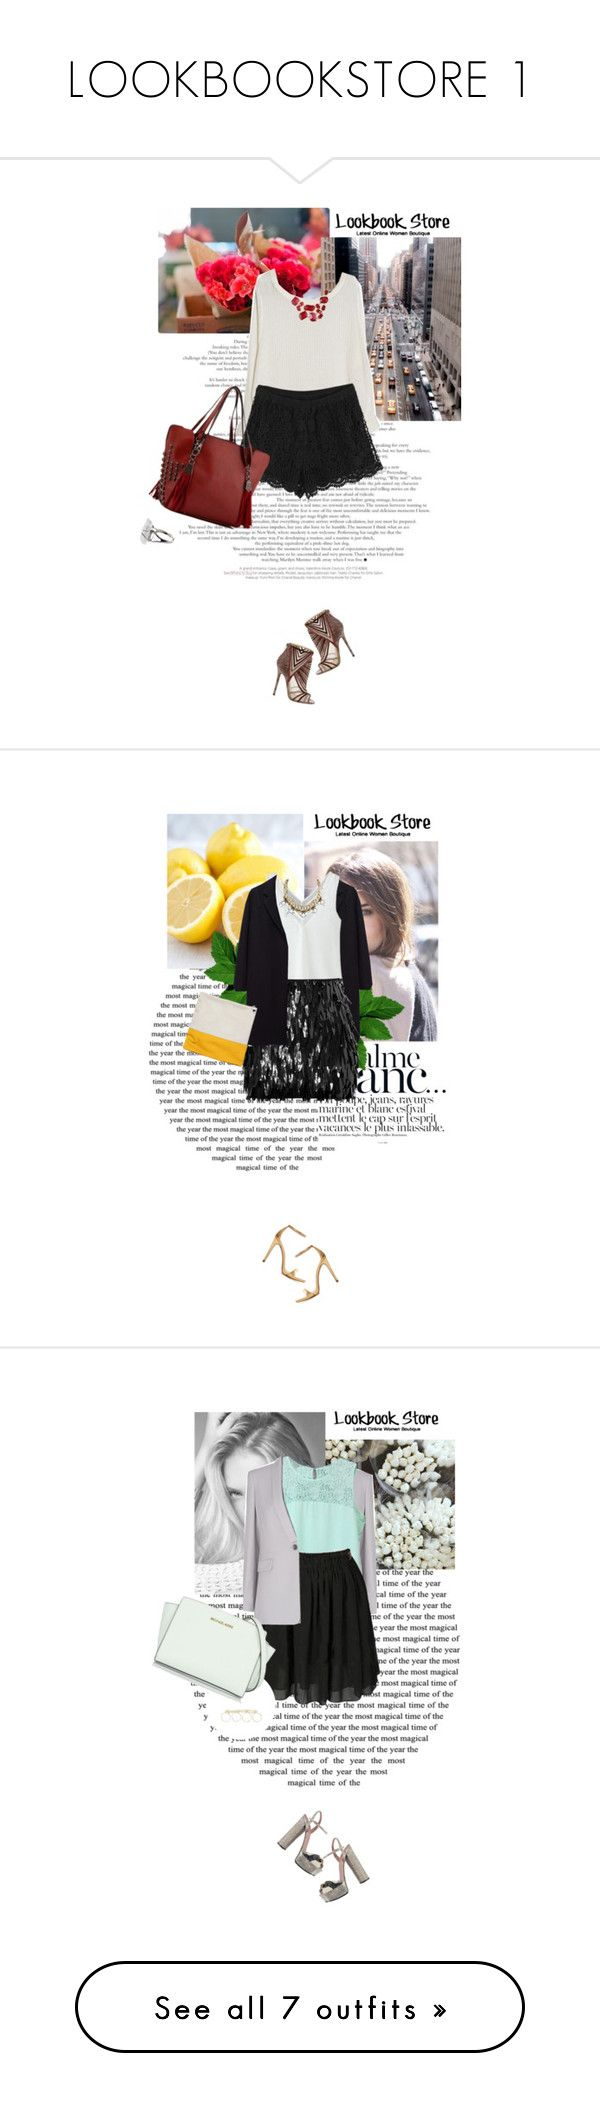 """""""LOOKBOOKSTORE 1"""" by merima-kopic ❤ liked on Polyvore featuring lookbookstore, Paul Frank, Jimmy Choo, Bensimon, The Row, Dsquared2, Zara, L.K.Bennett, Gucci and River Island"""